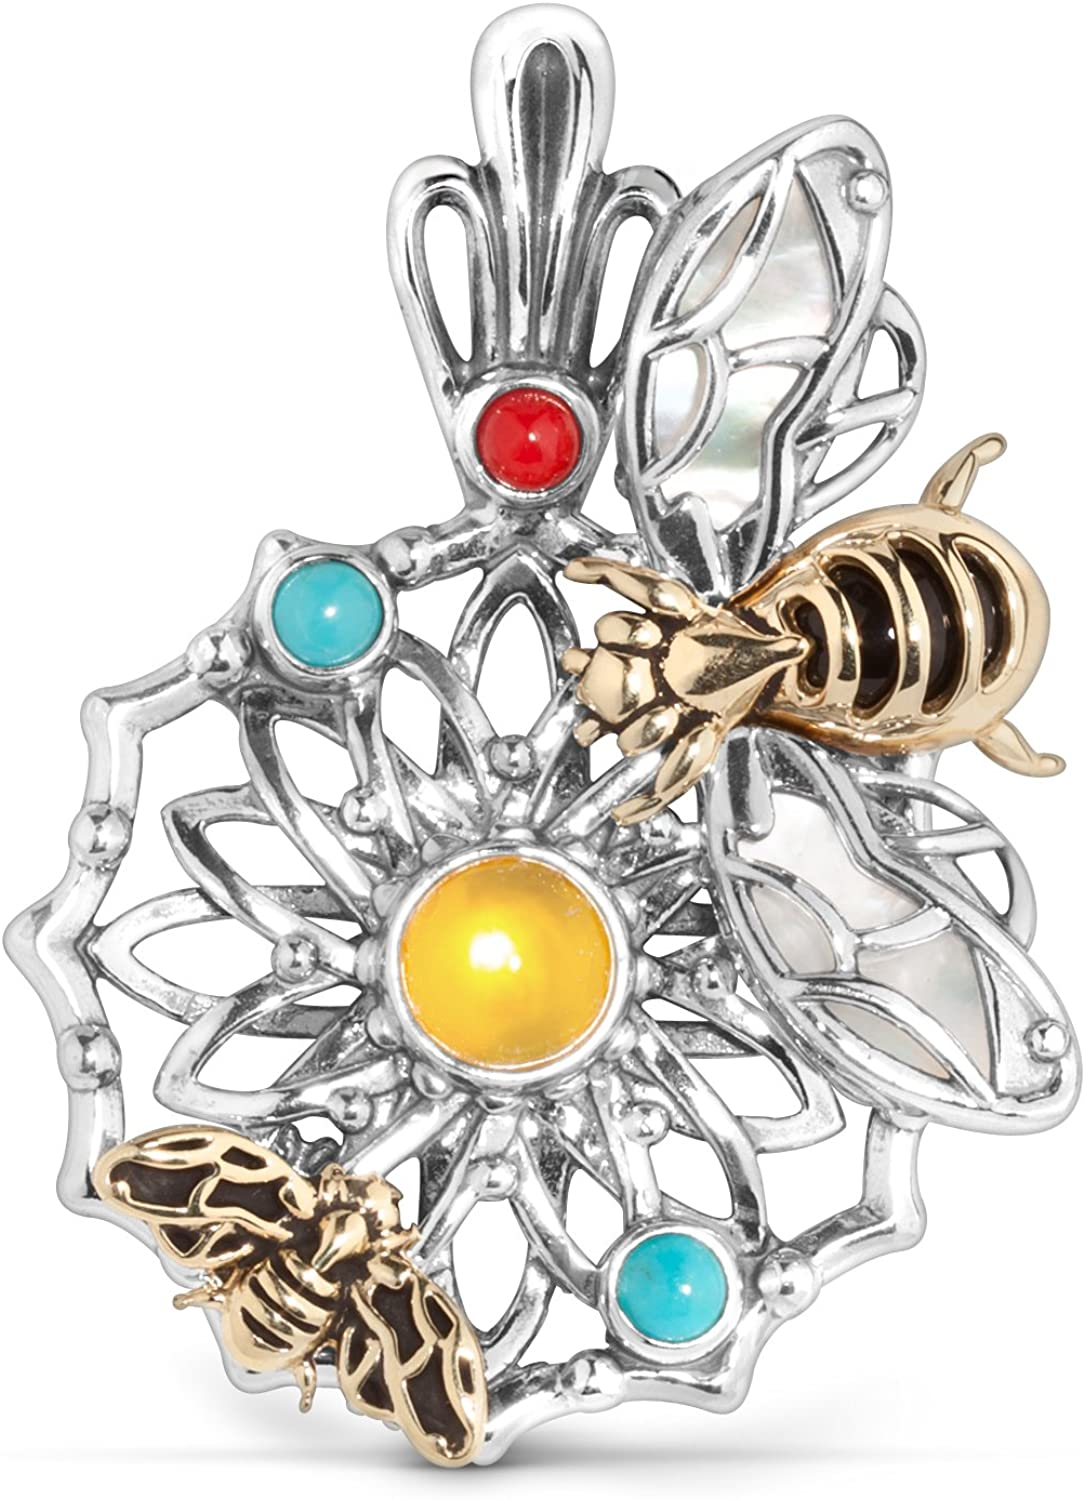 American West Fritz Casuse Sterling Silver Mixed Metal Pendant Enhancer